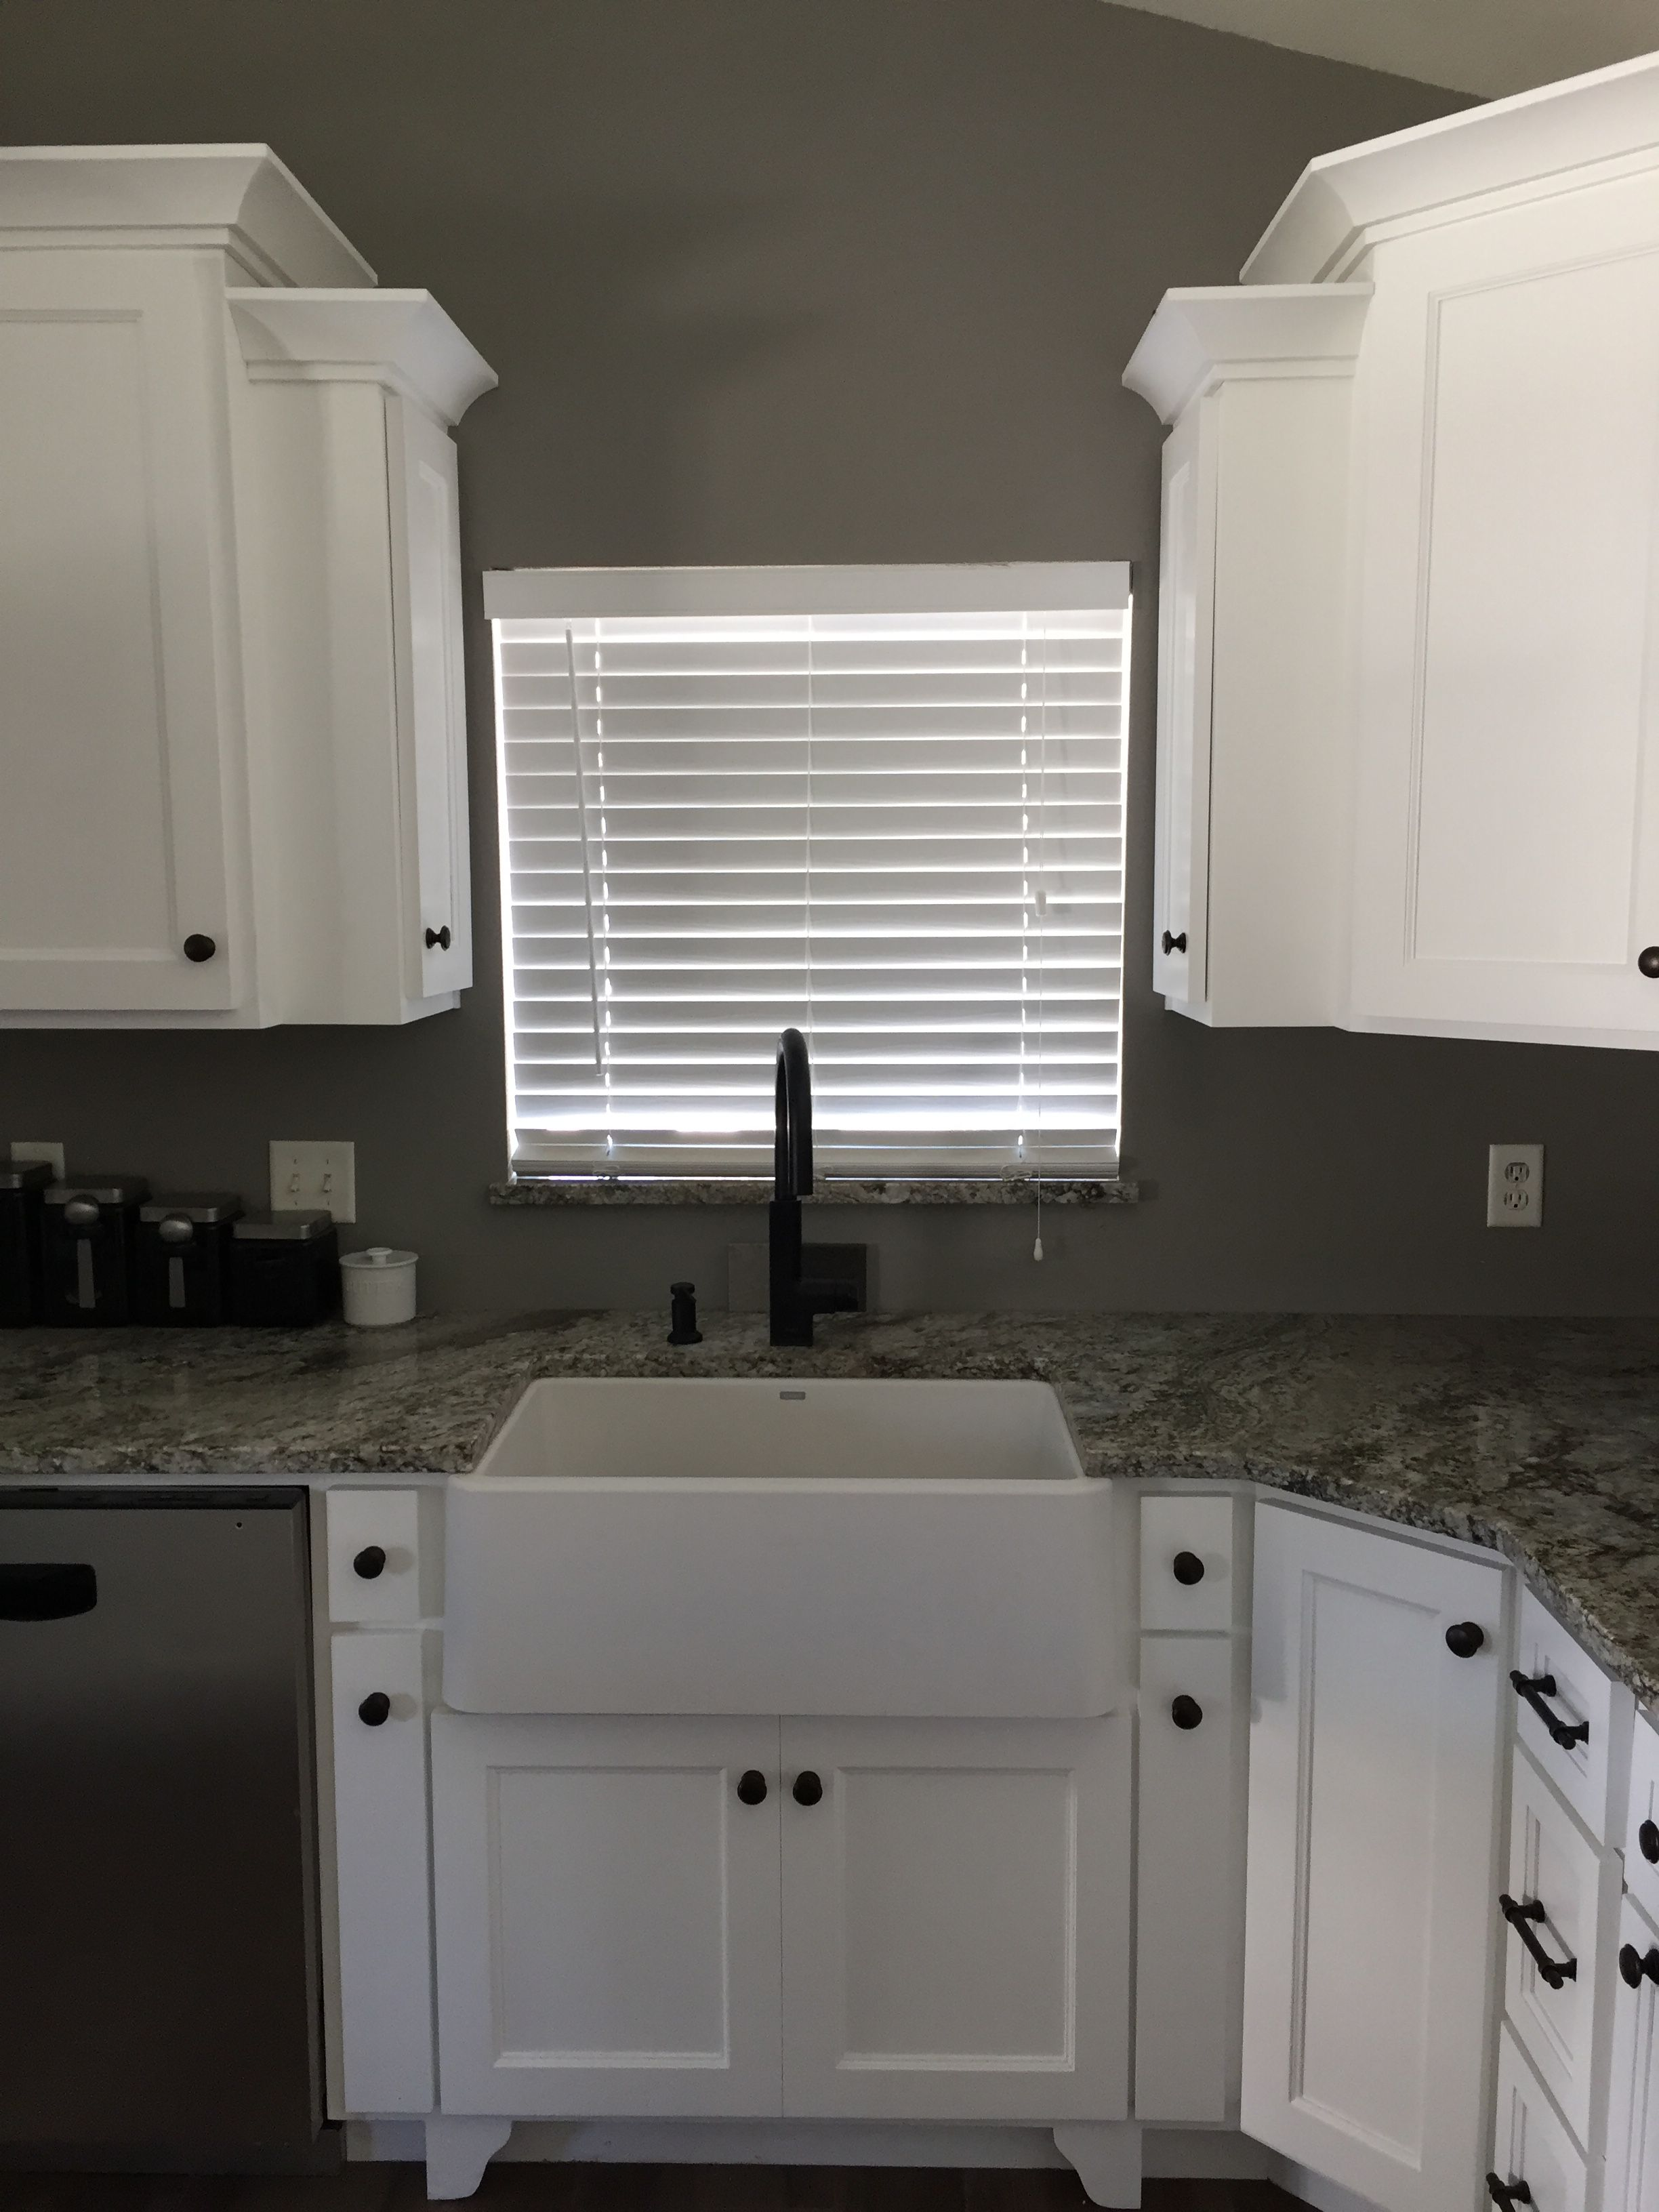 White kitchen cabinets with white blanco ikon sink and black moen